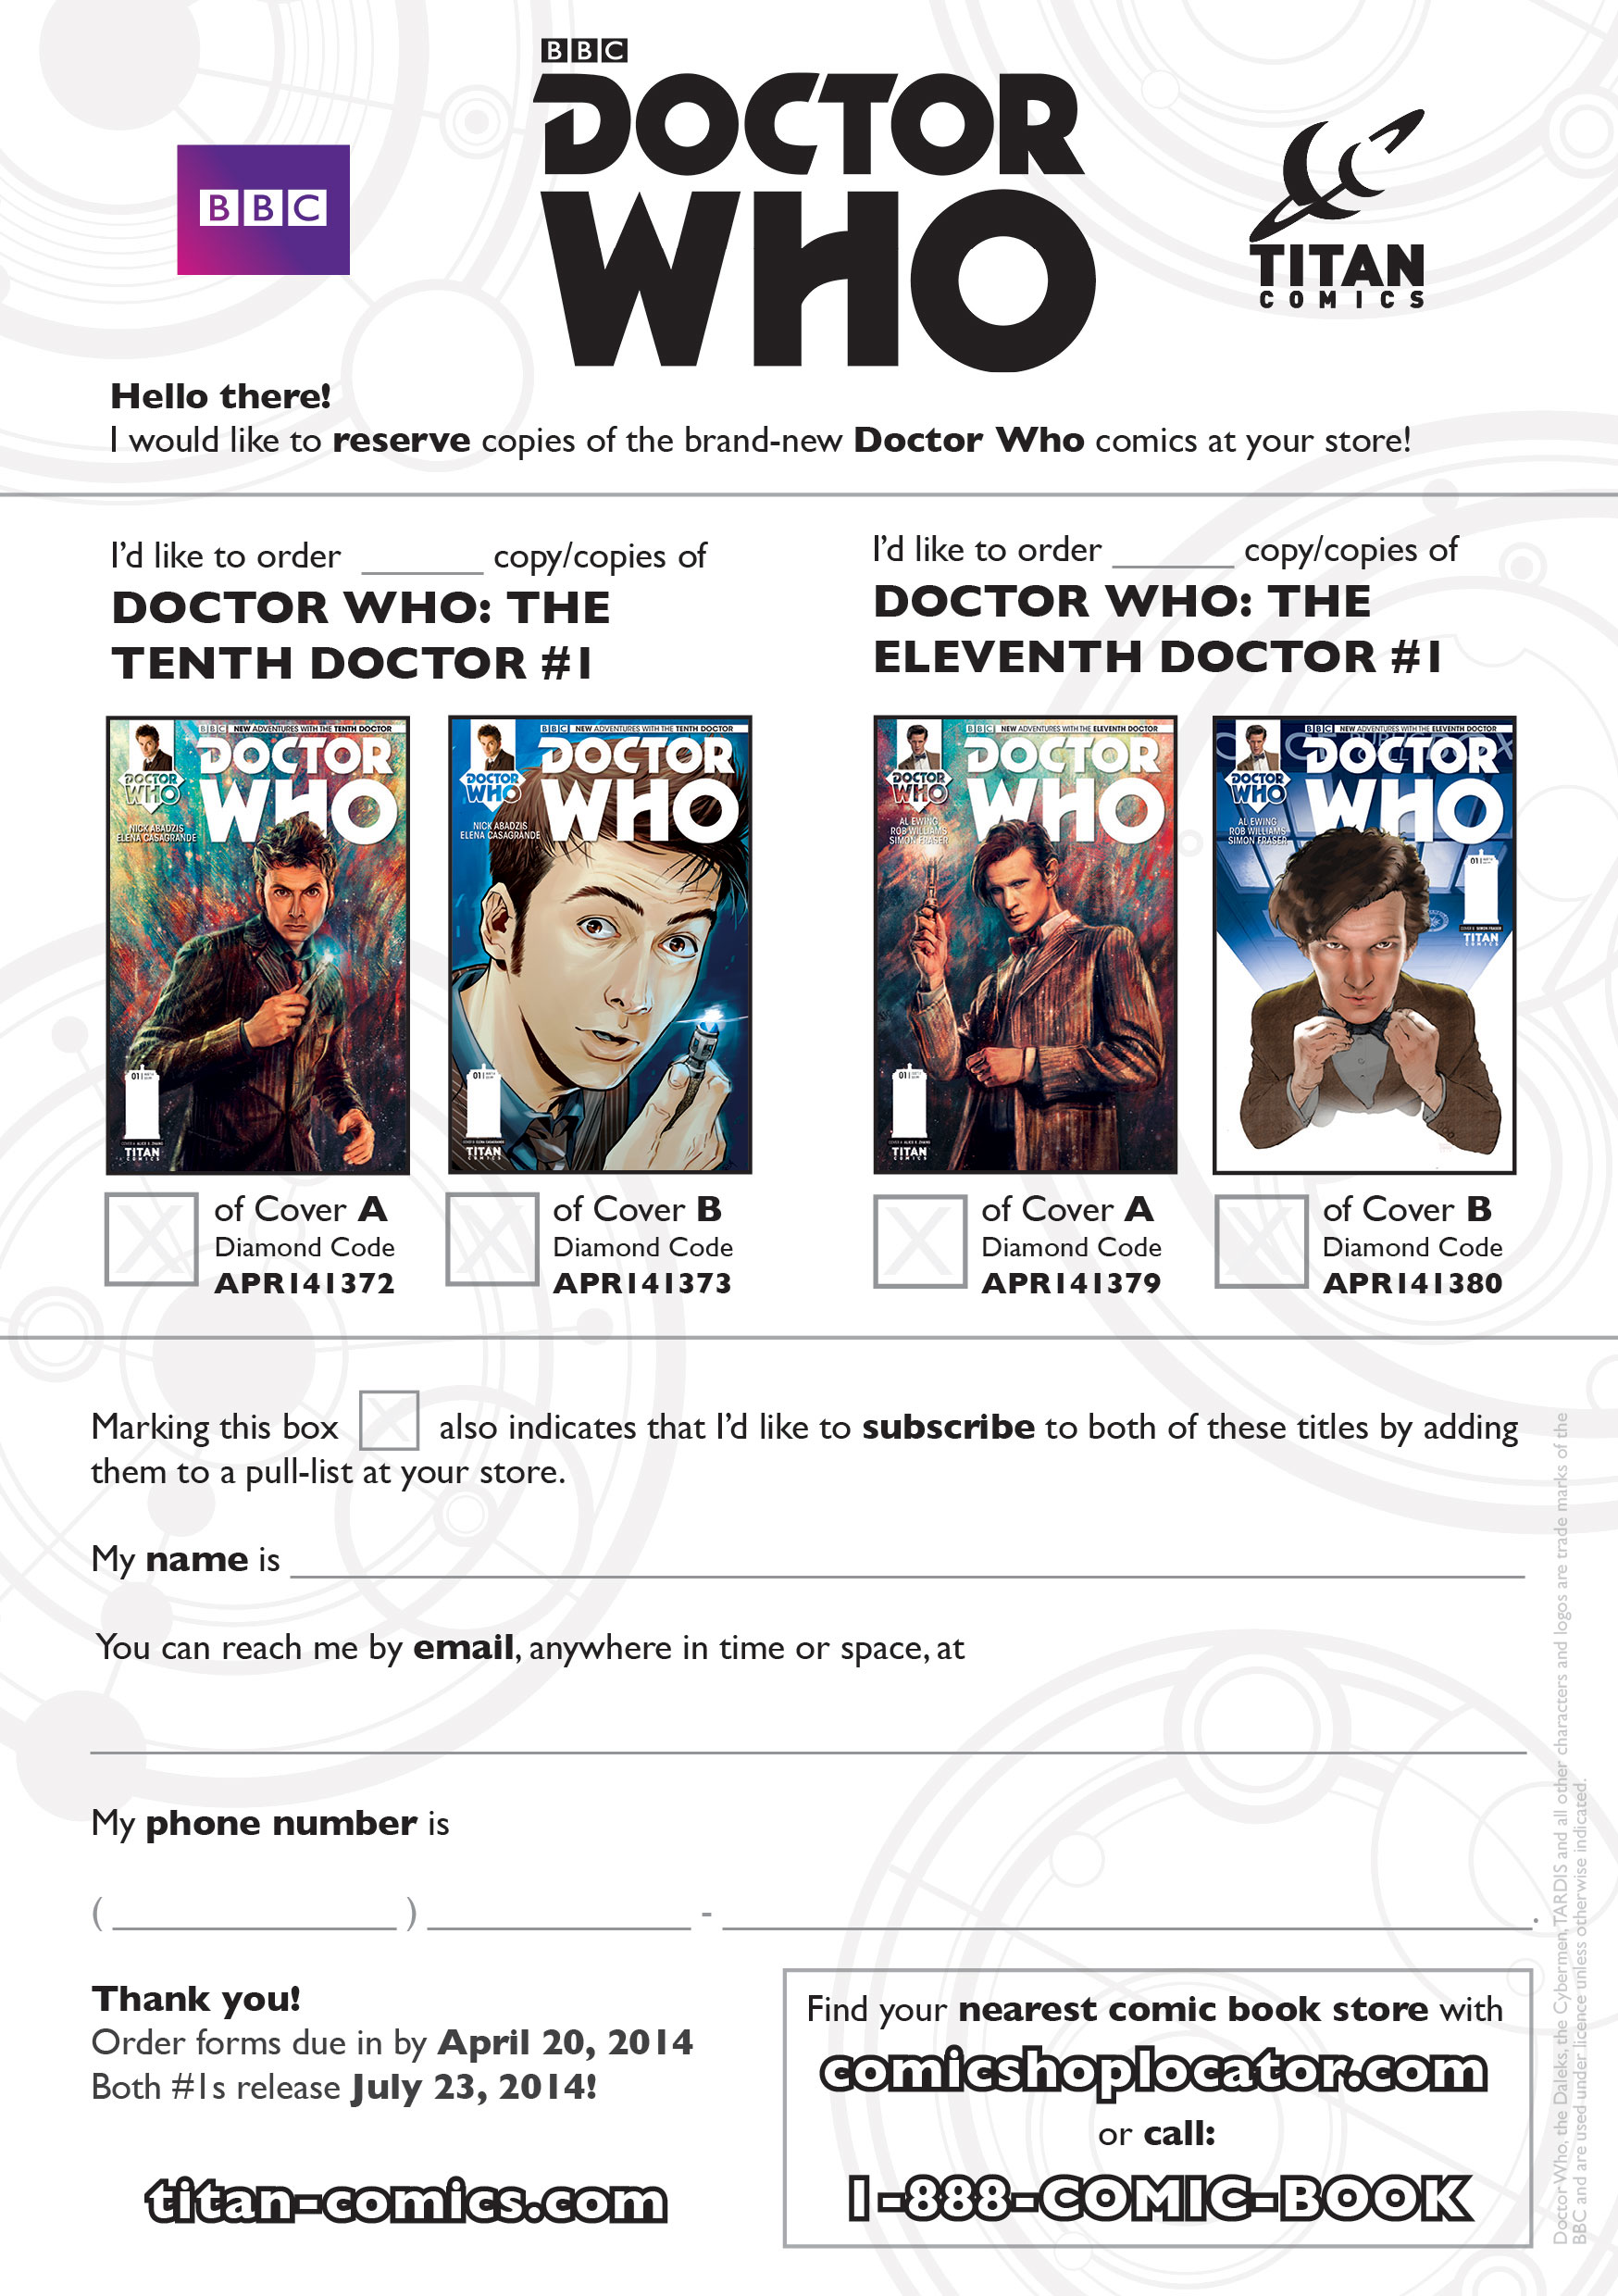 PRE ORDERS NOW OPEN FOR DOCTOR WHO COMICS @ an Comics on pre order food, pre order symbol, pre order process, contact form, pre order unity, pre order design, pre order button, pre order menu, pre order code, clothing form,